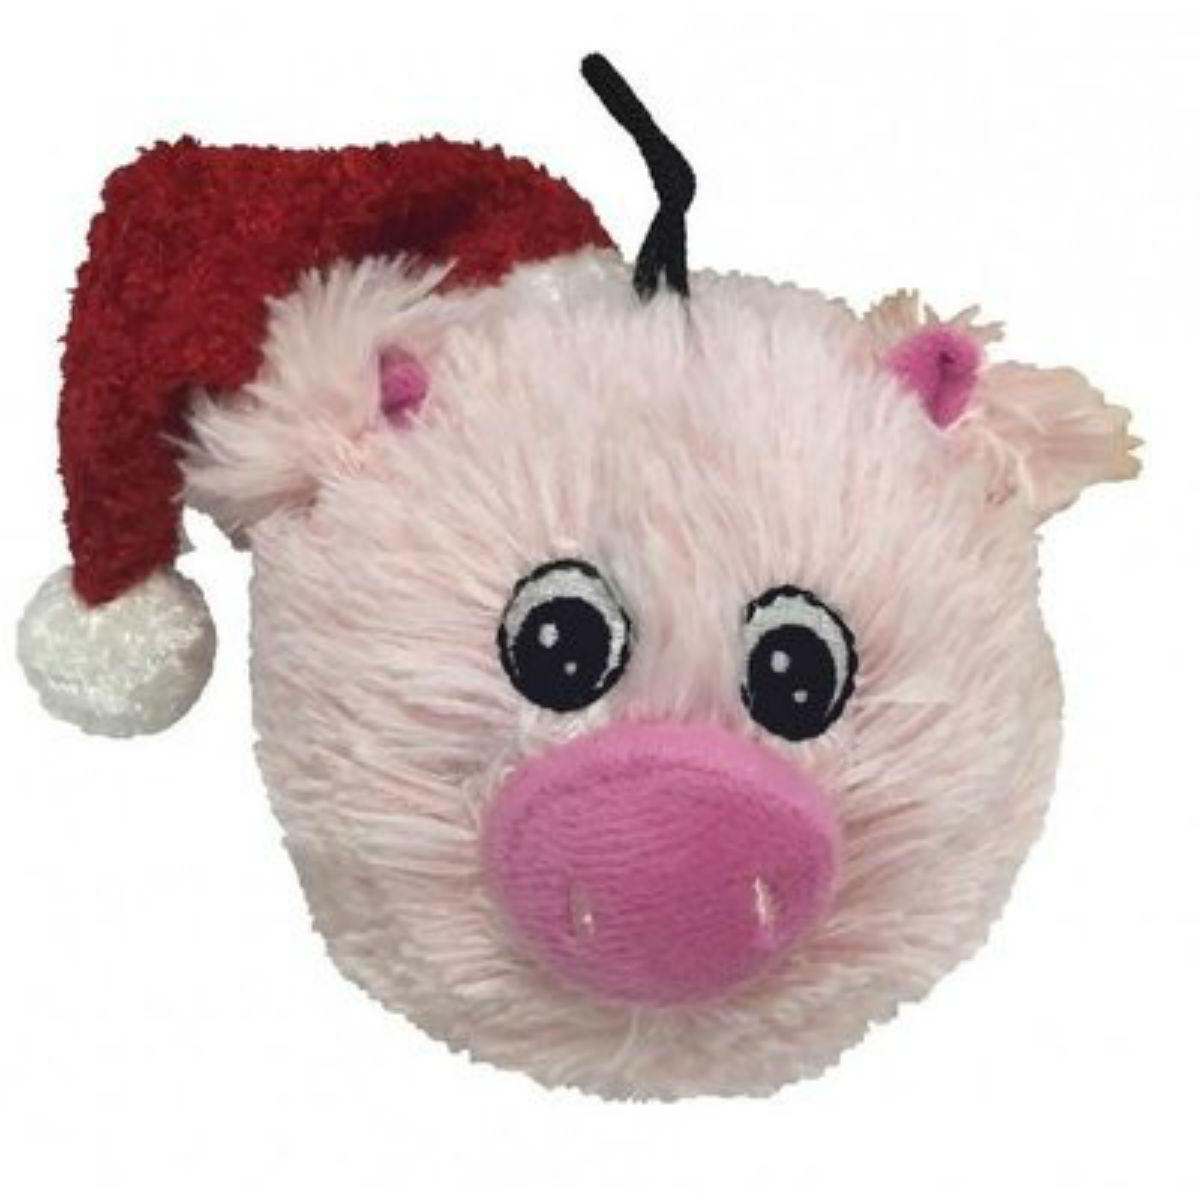 PetLou Christmas EZ Squeaky Pig Dog Toy